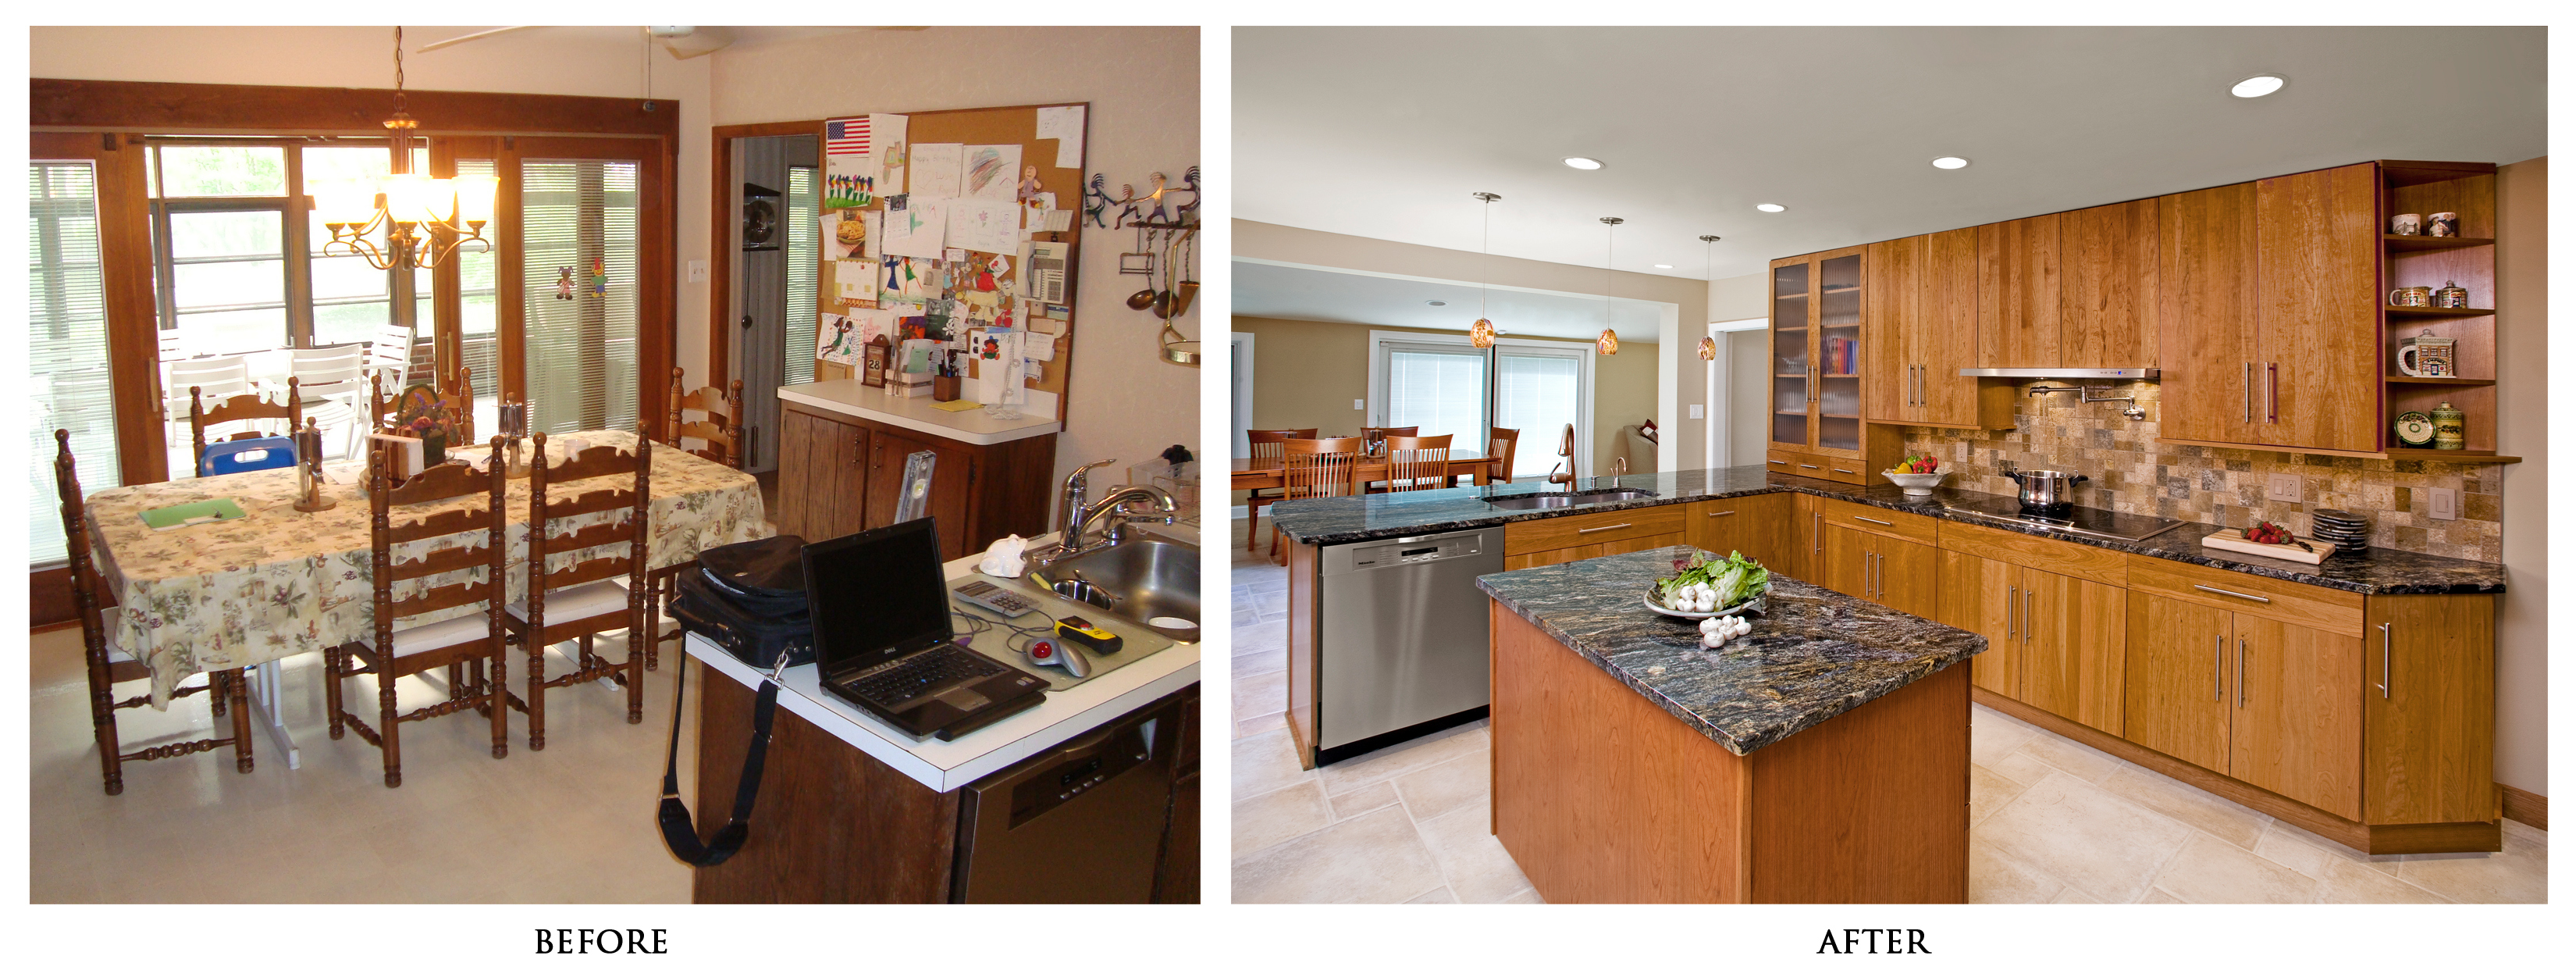 Small Kitchen Remodel Before And After For Stunning